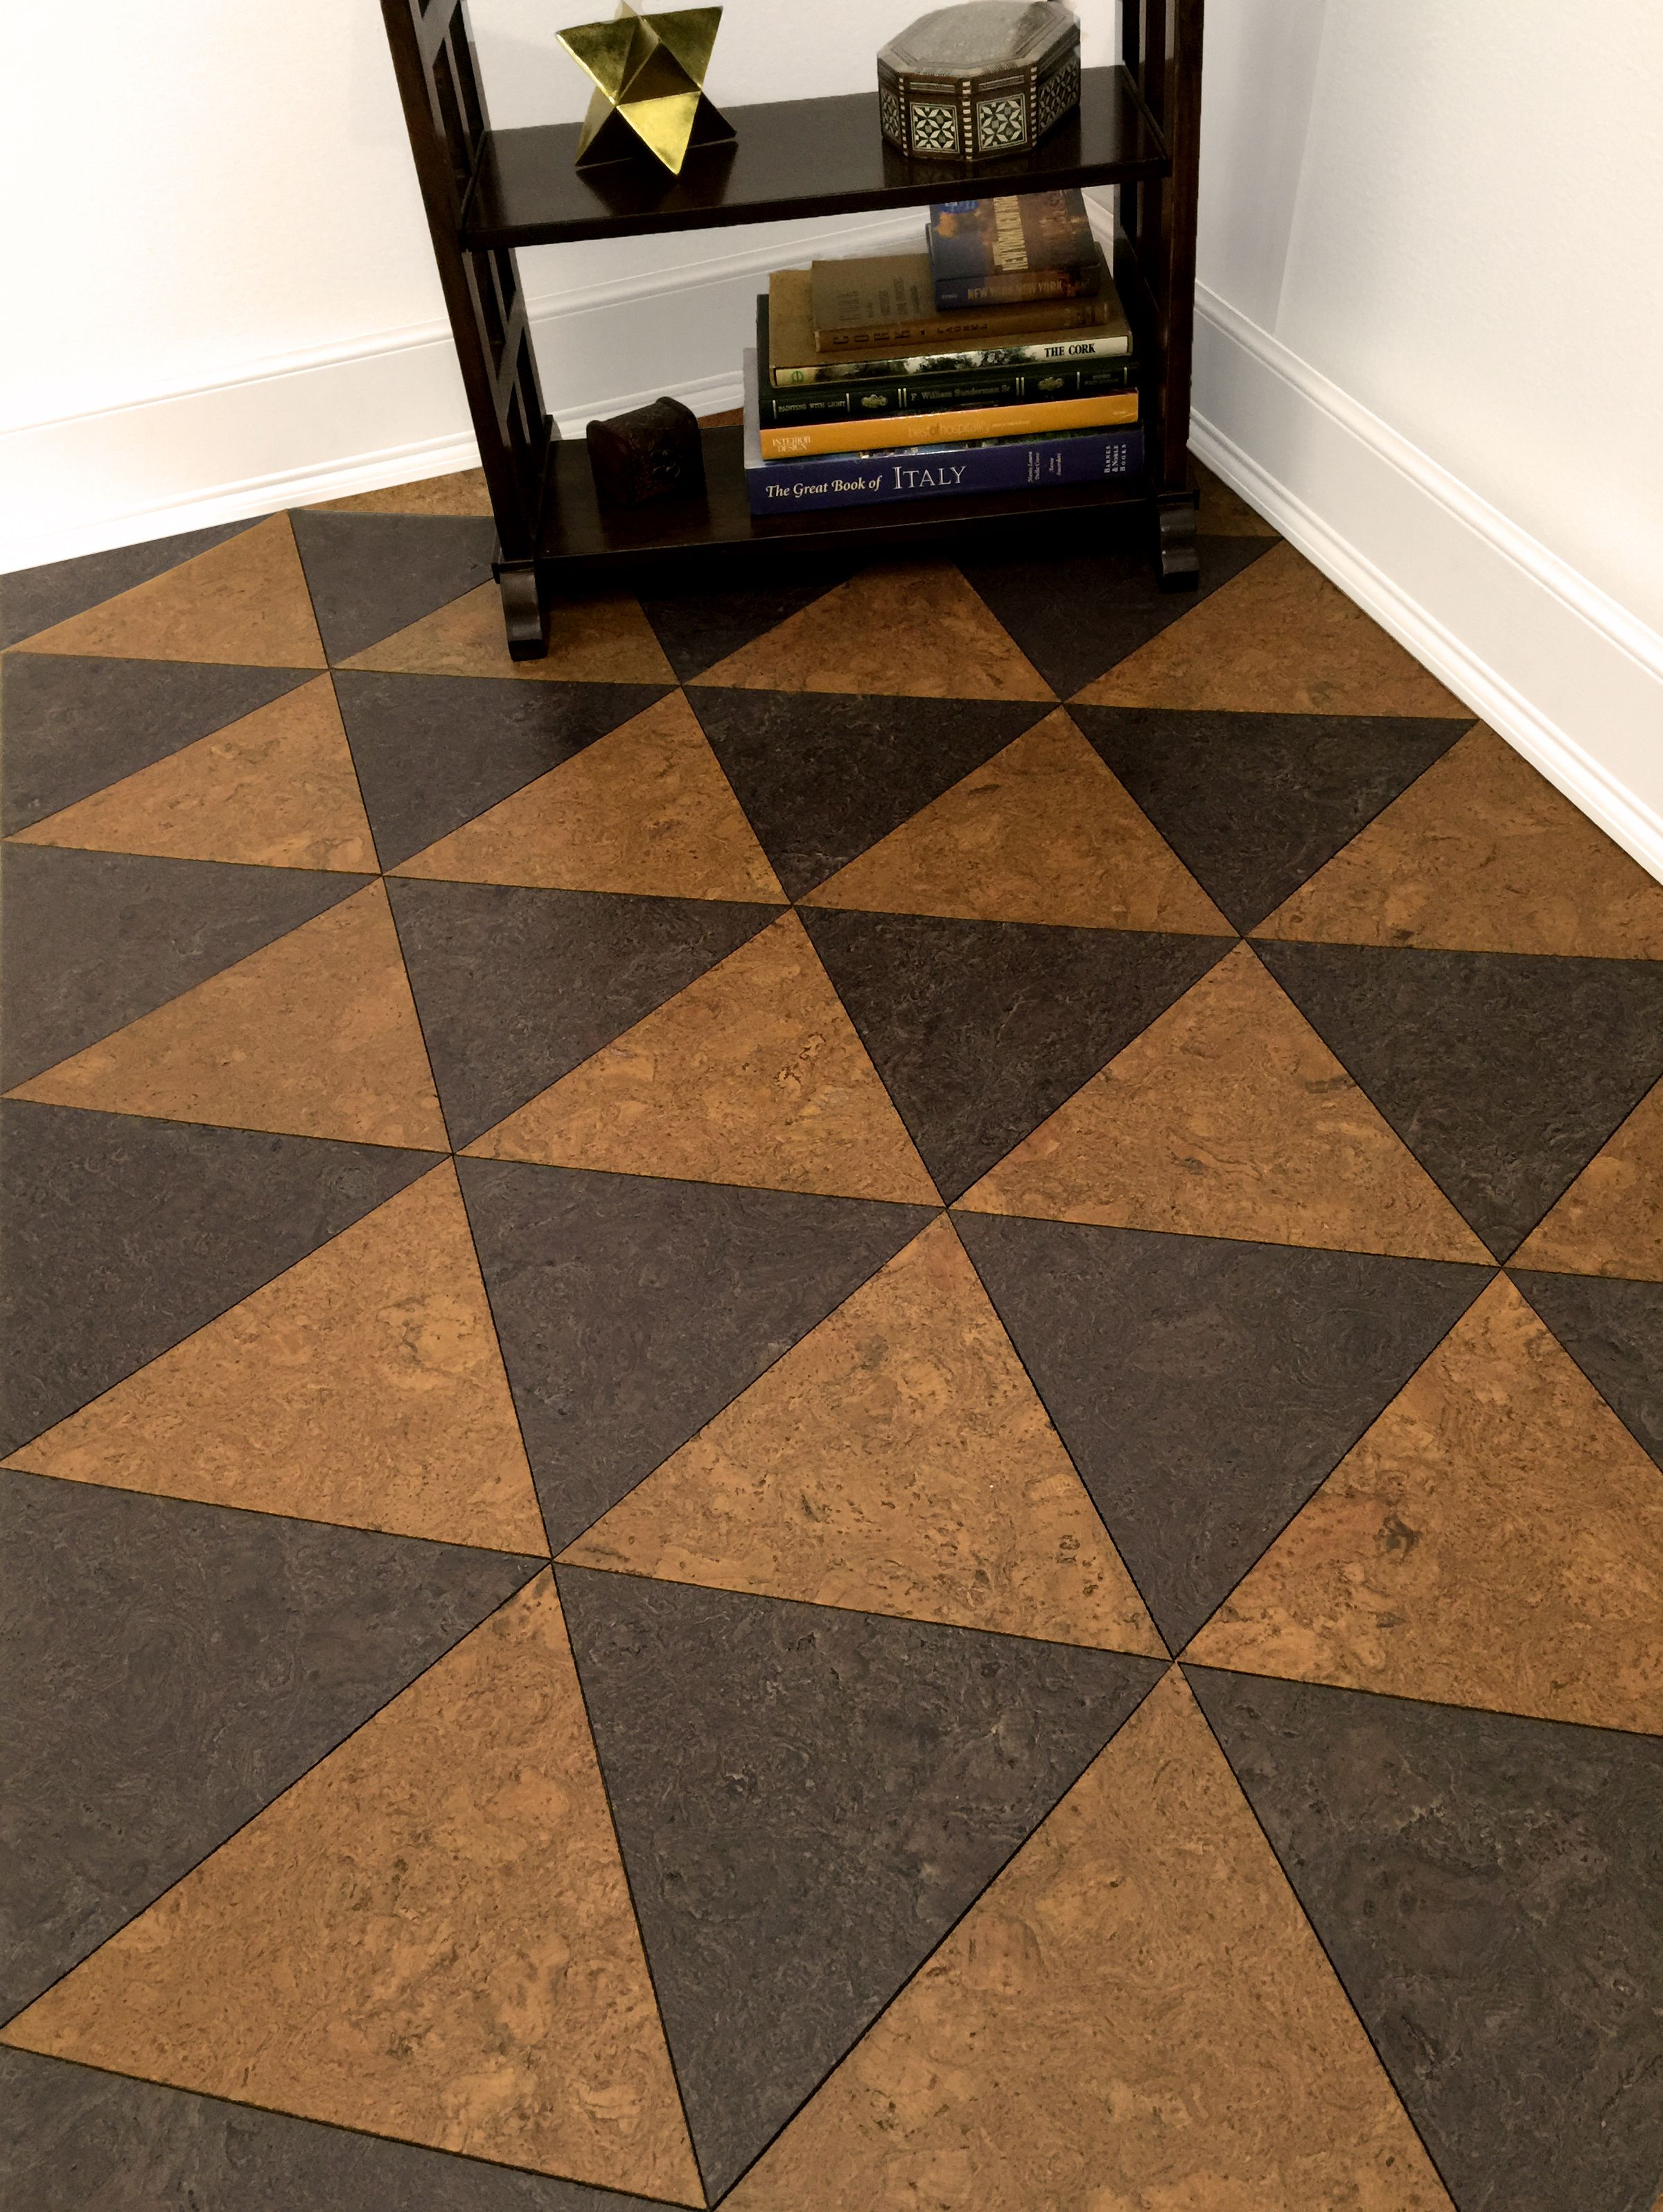 Cork Tiles For Flooring Yes This Is A Cork Floor From